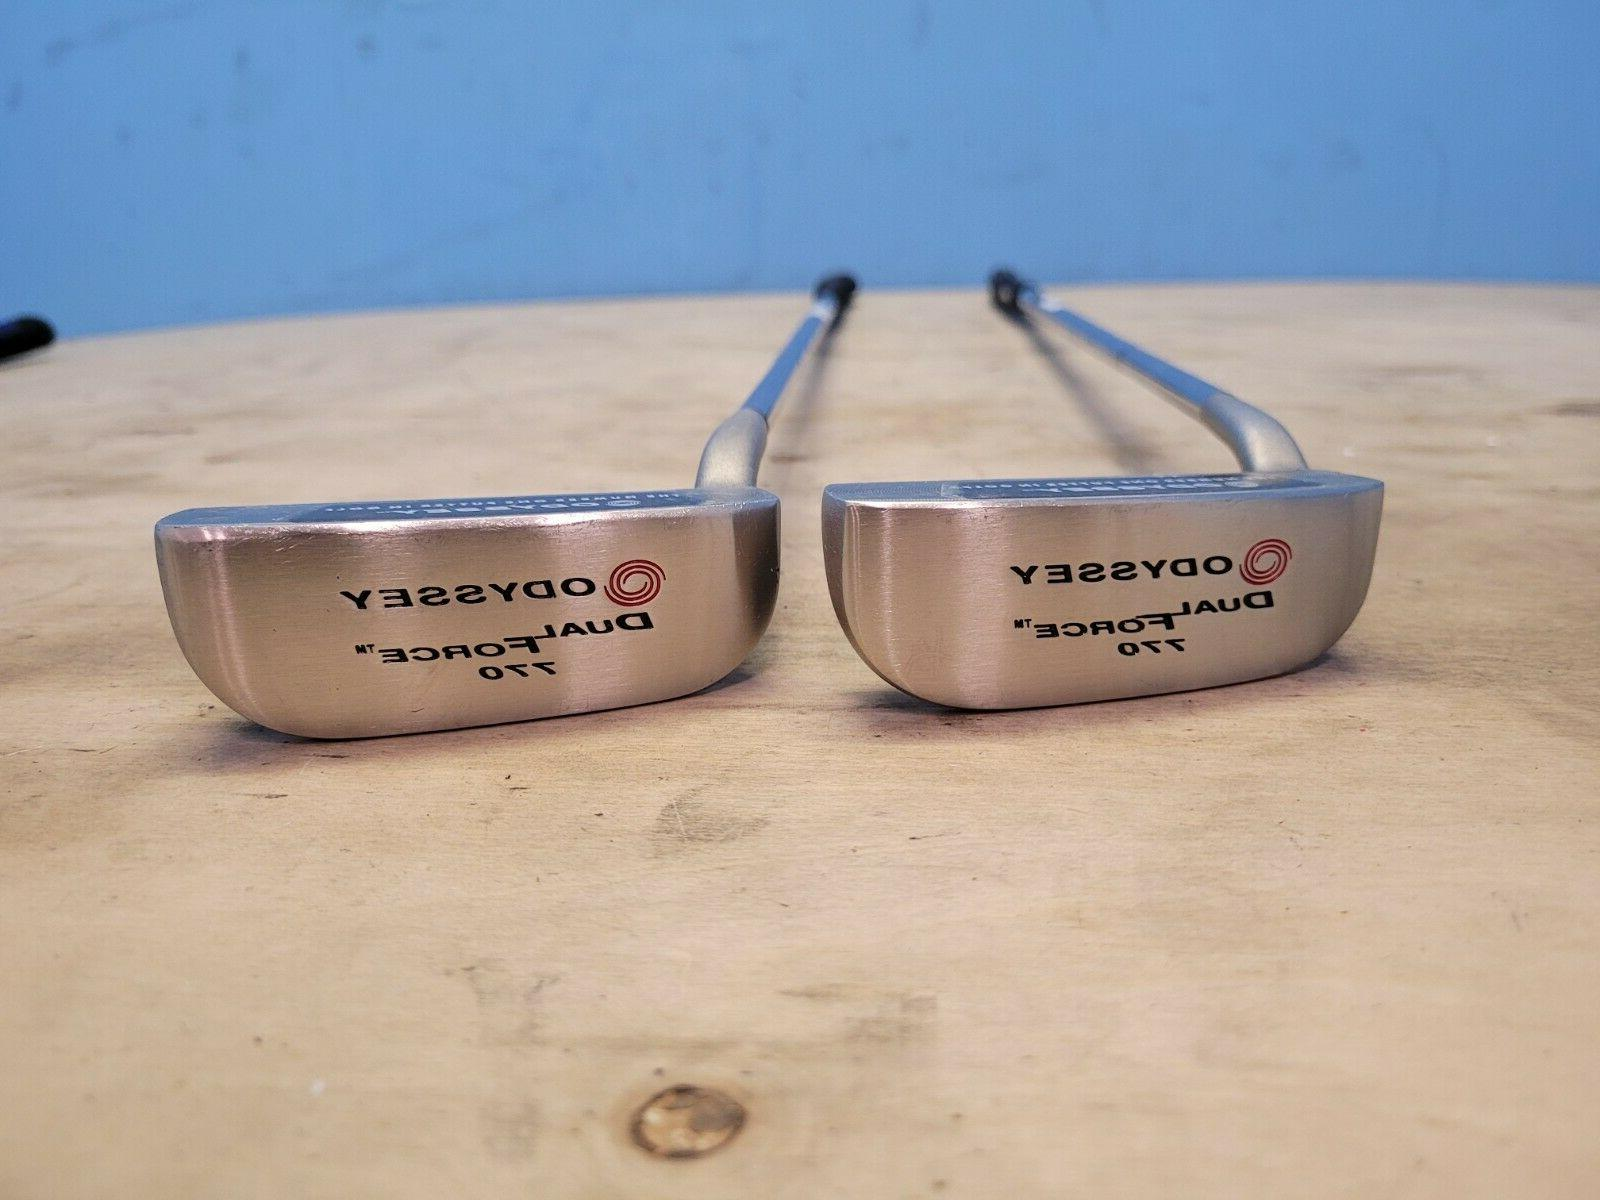 dual force 770 34 blade putter lh